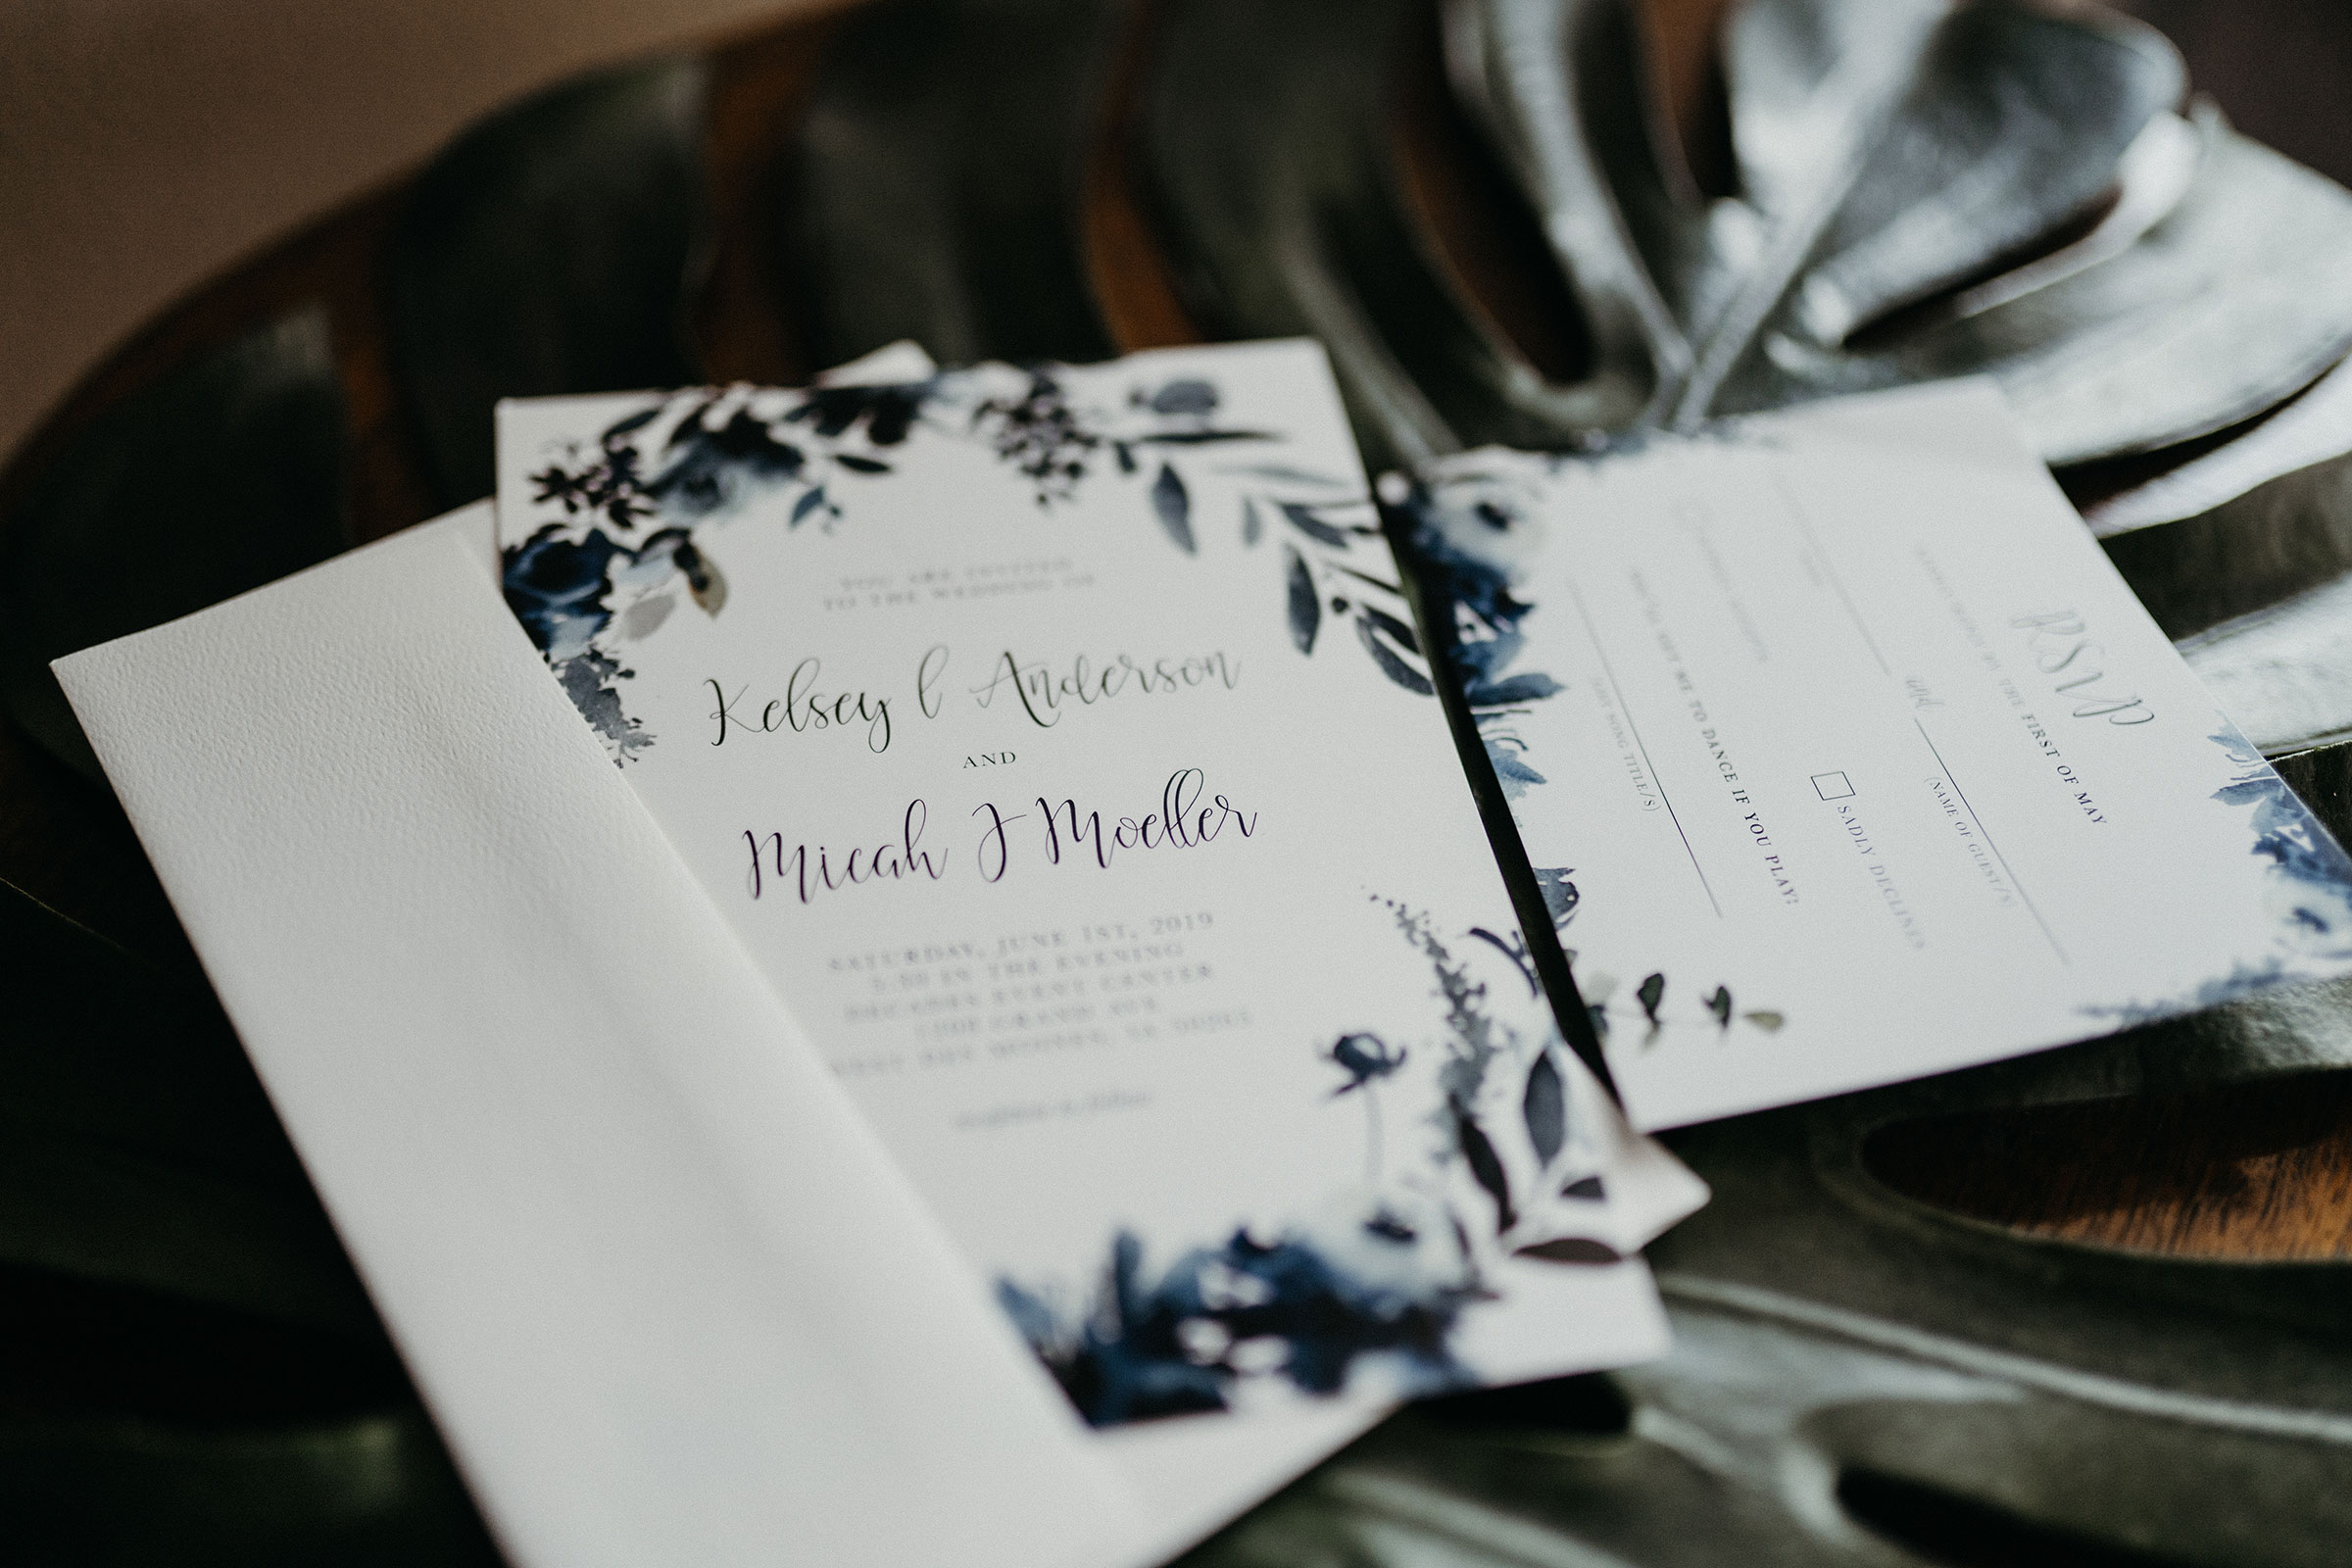 invites-laying-on-end-table-decades-event-center-building-desmoines-iowa-raelyn-ramey-photography..jpg